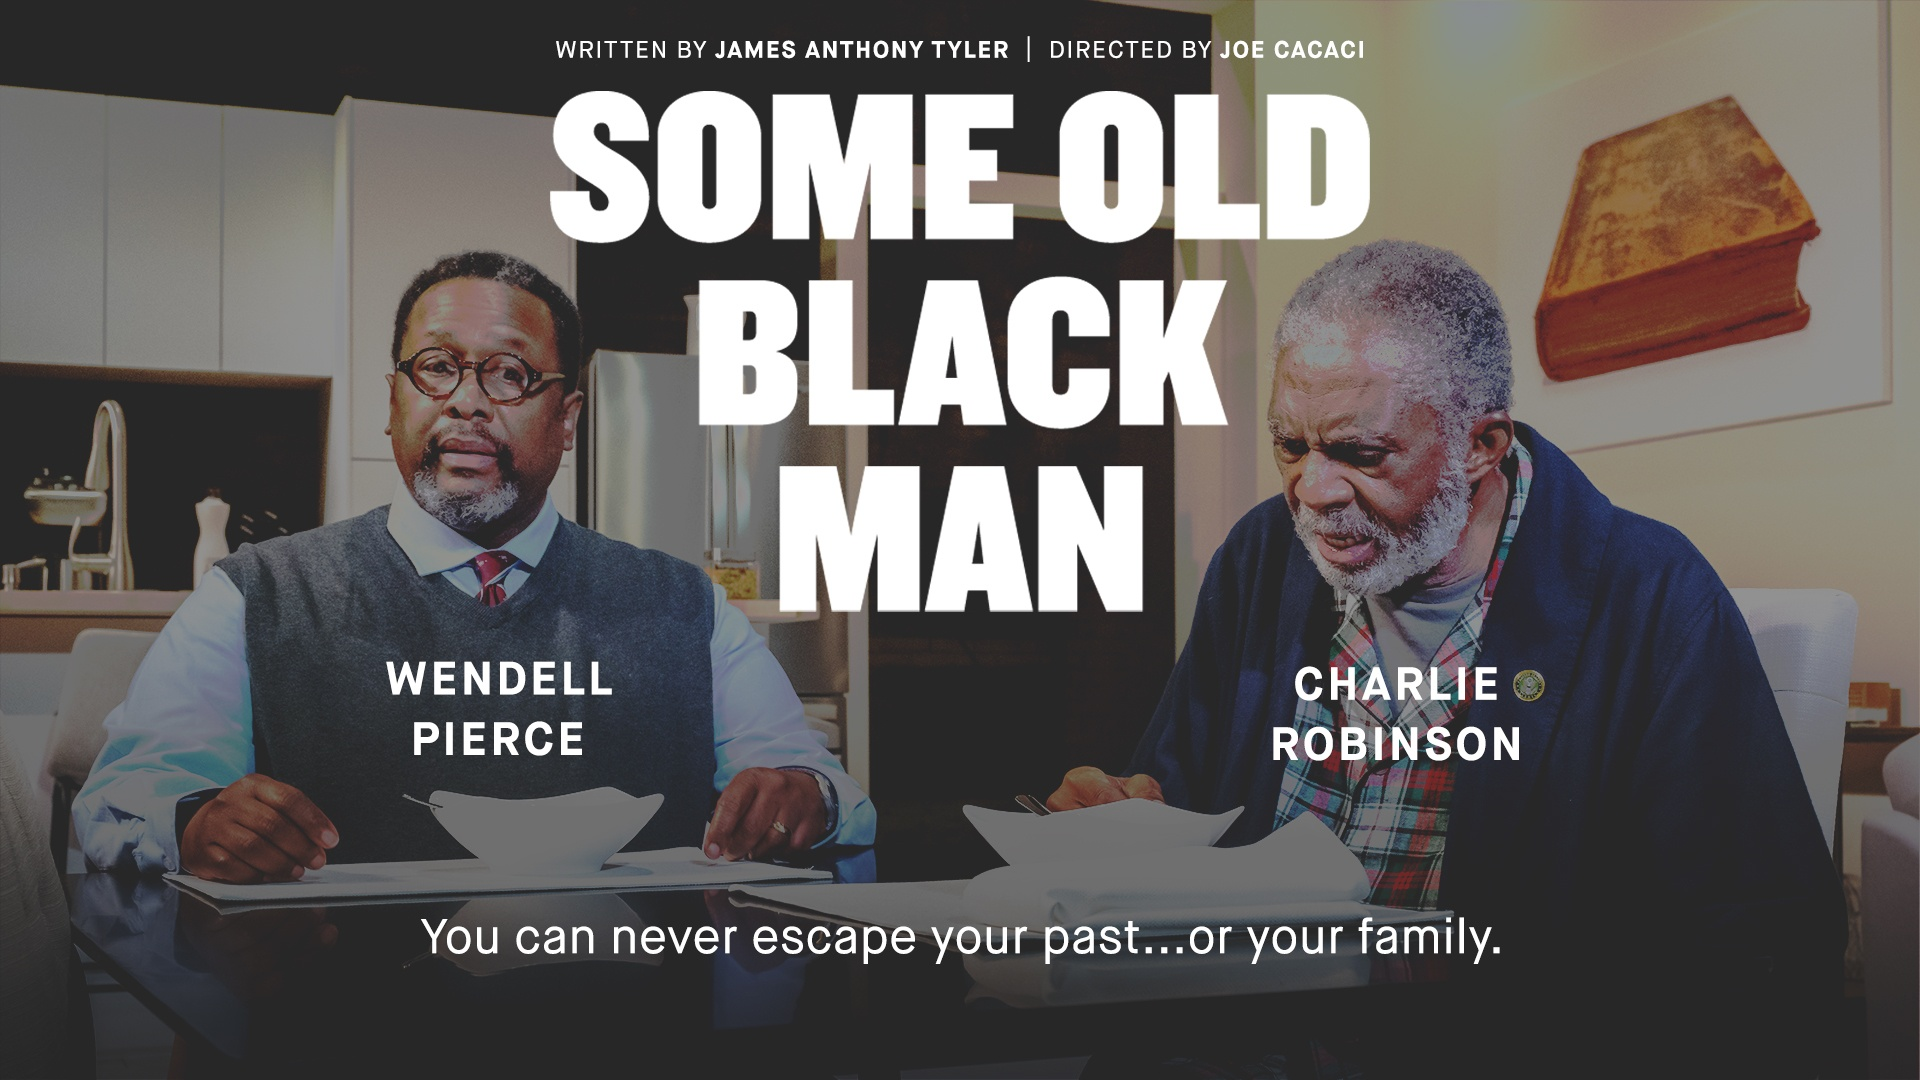 Some Old Black Man Film Poster. Play is featuring Wendell Pierce and Charlie Robinson.